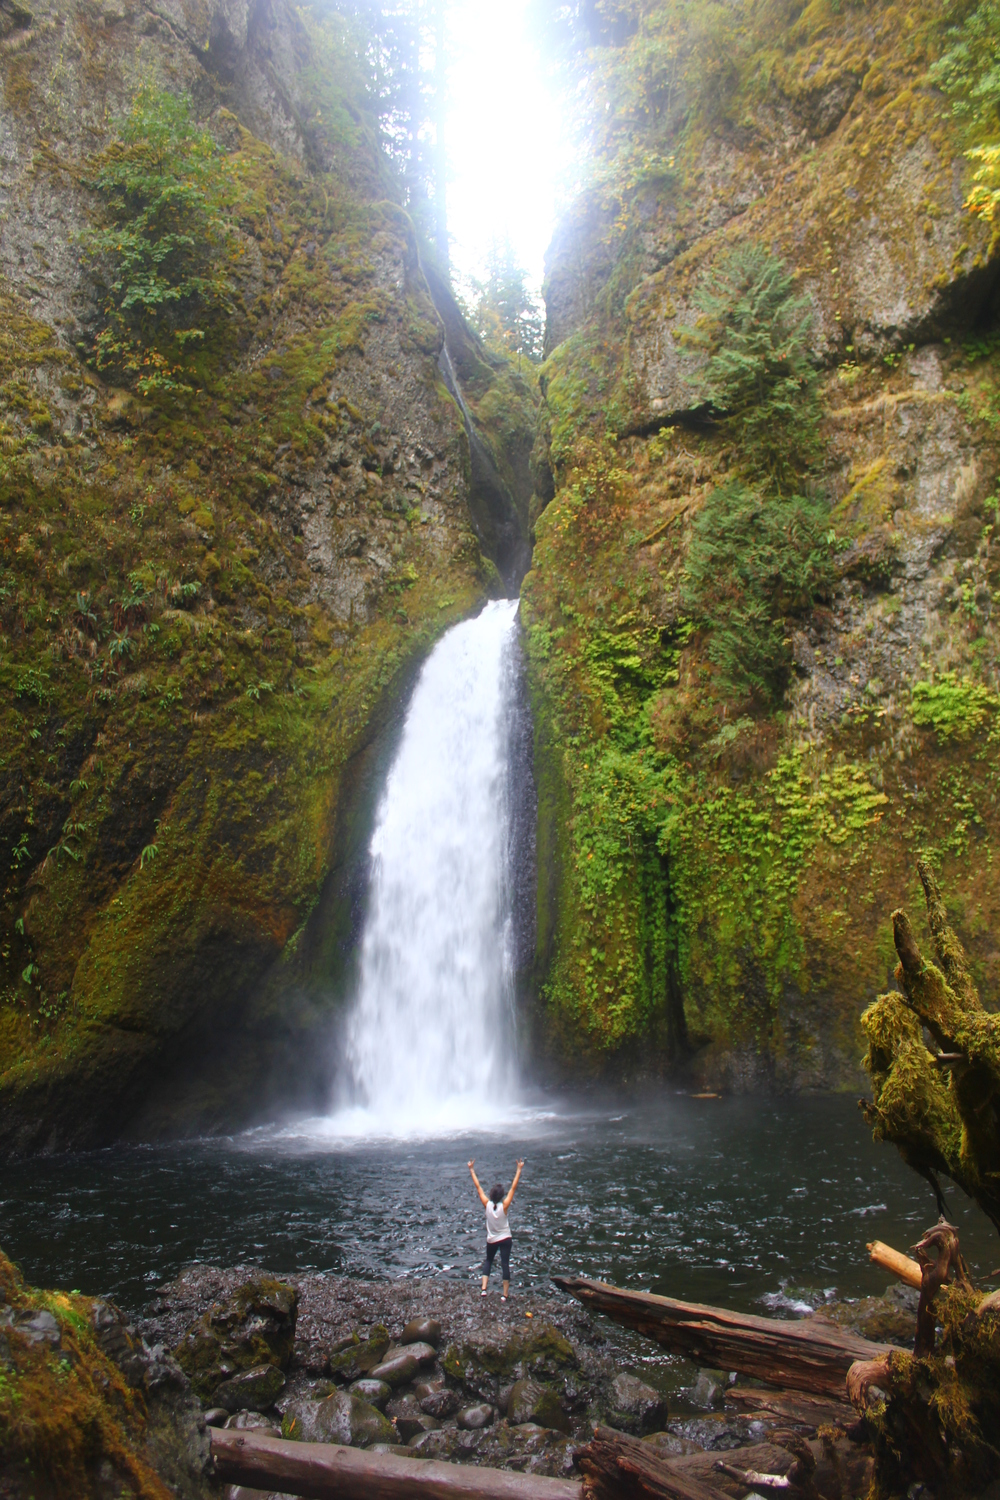 WAHCLELLA FALLS WATERFALL HIKE